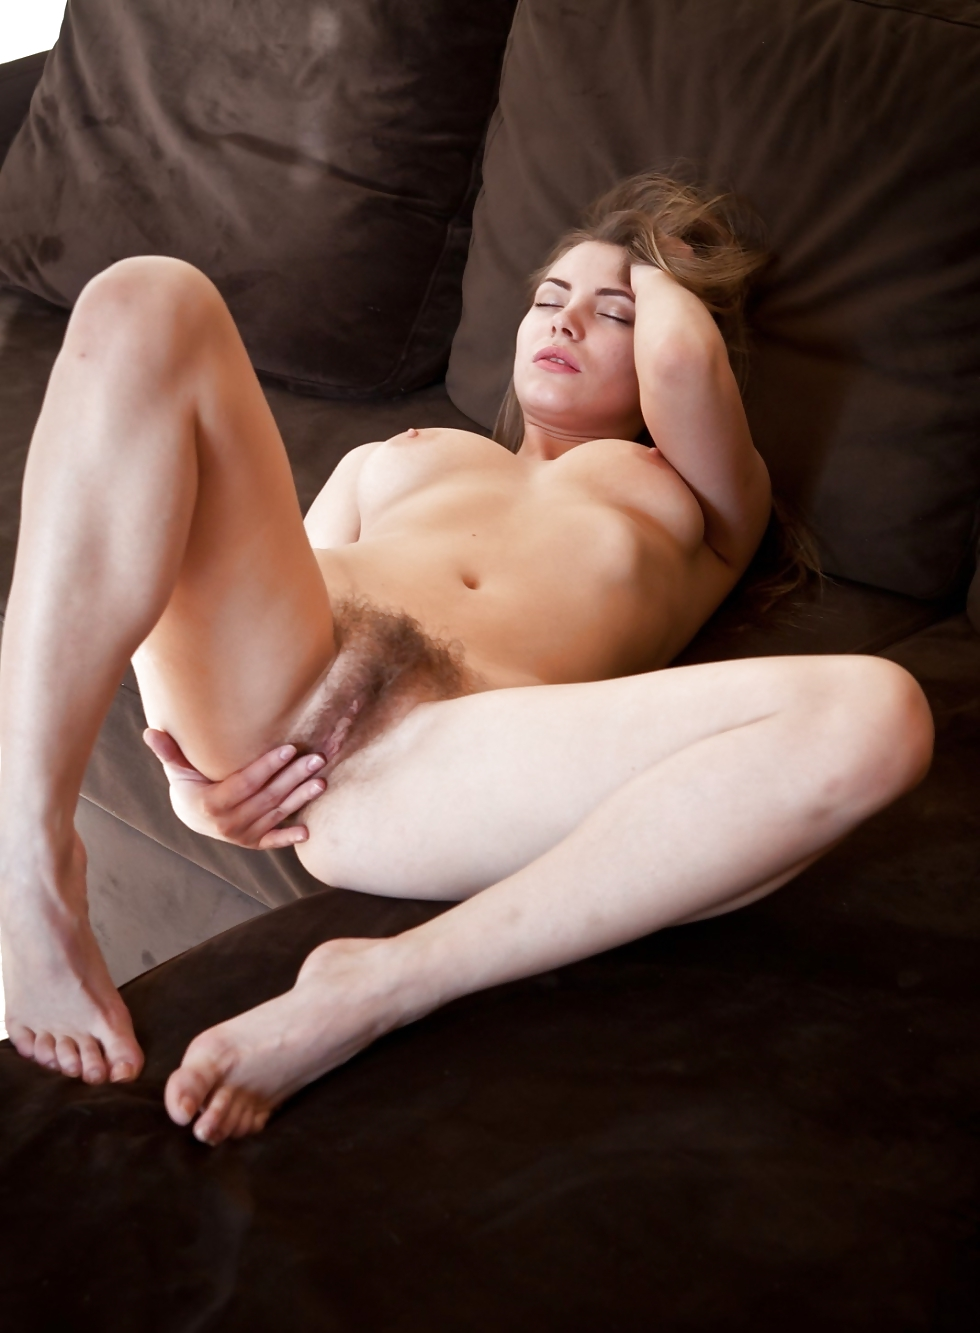 lesbian-tami-in-sex-pictures-body-tattoos